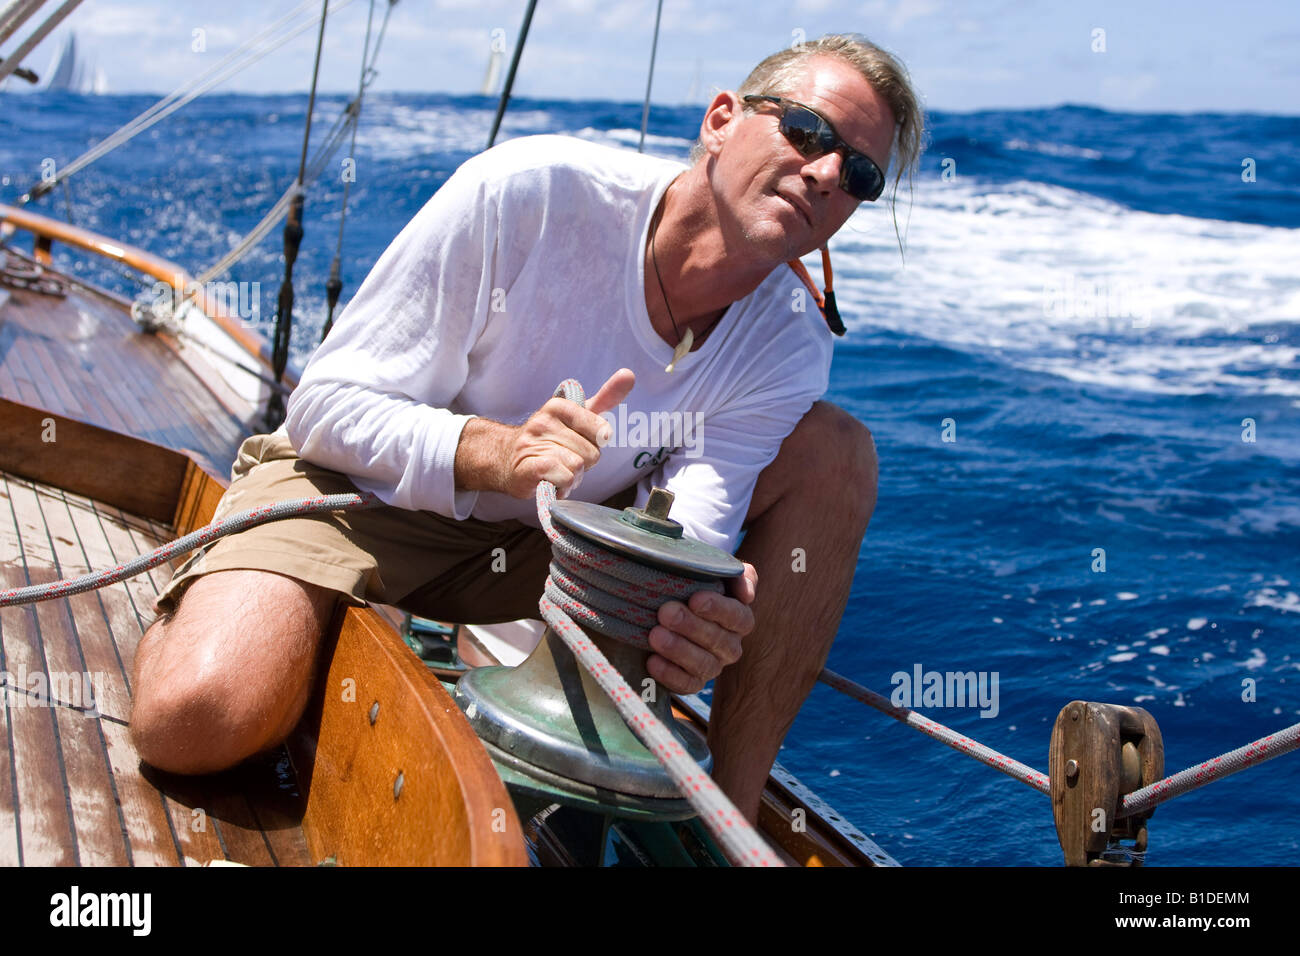 A crew member trims the head sail on board the sailing yawl SY Galatea in Antigua during the 2008 Antigua Classic - Stock Image